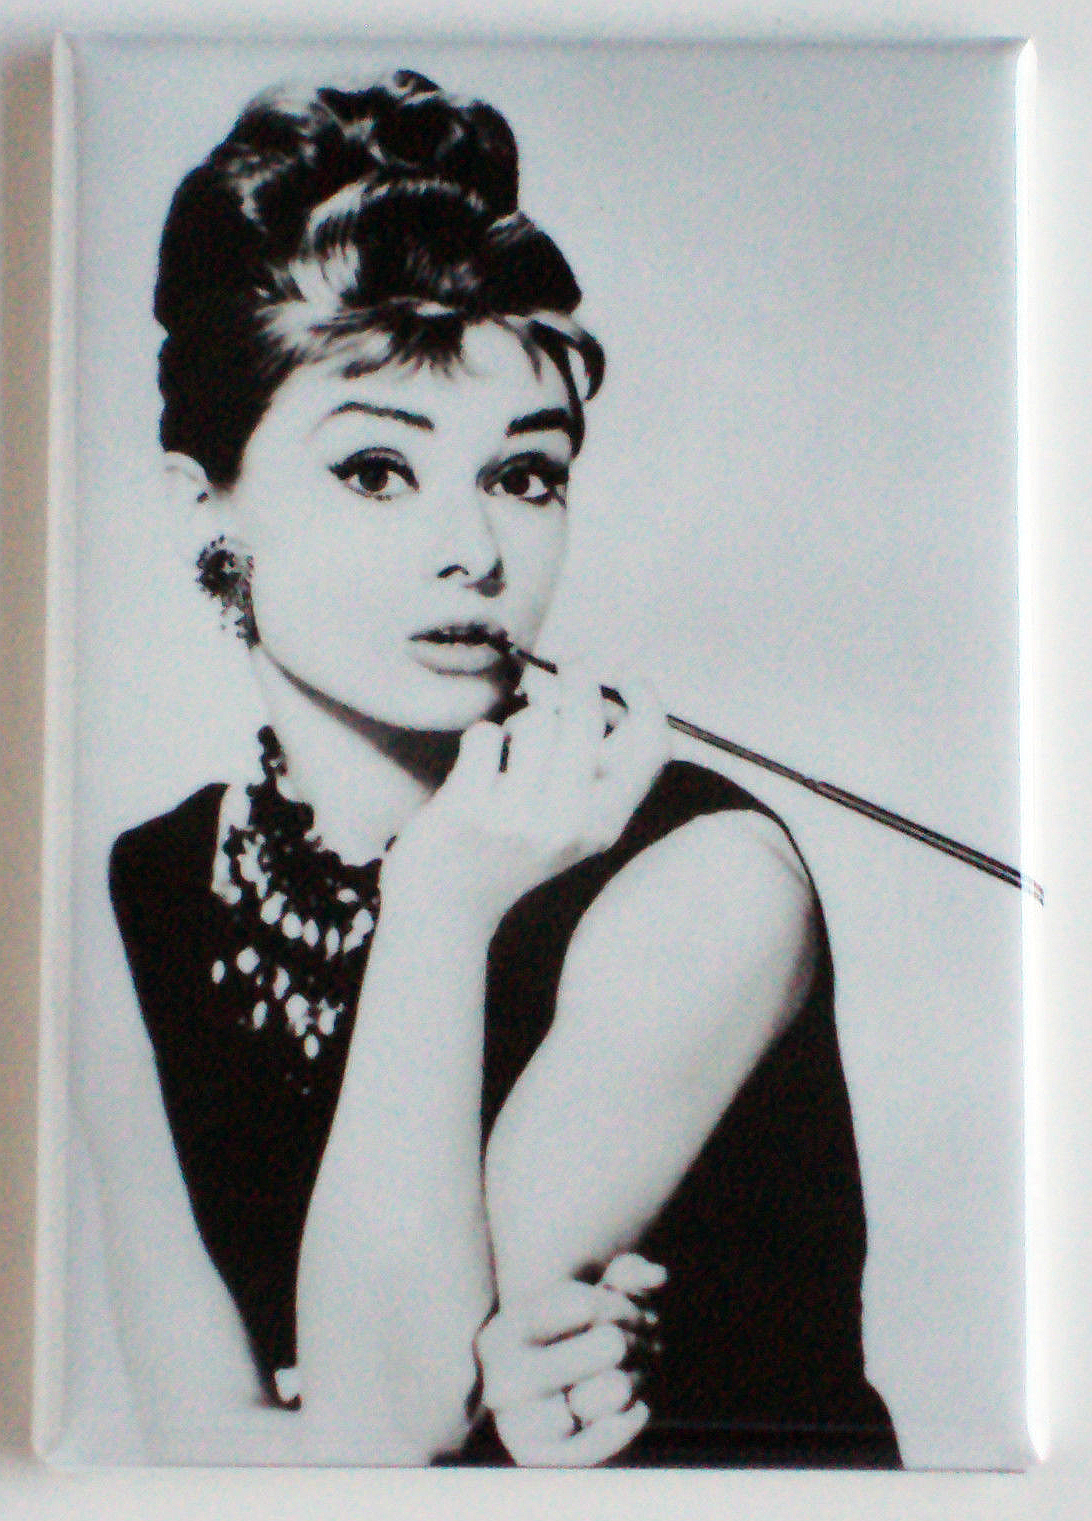 Breakfast at tiffany s magnet cigarette holder 2 x 3